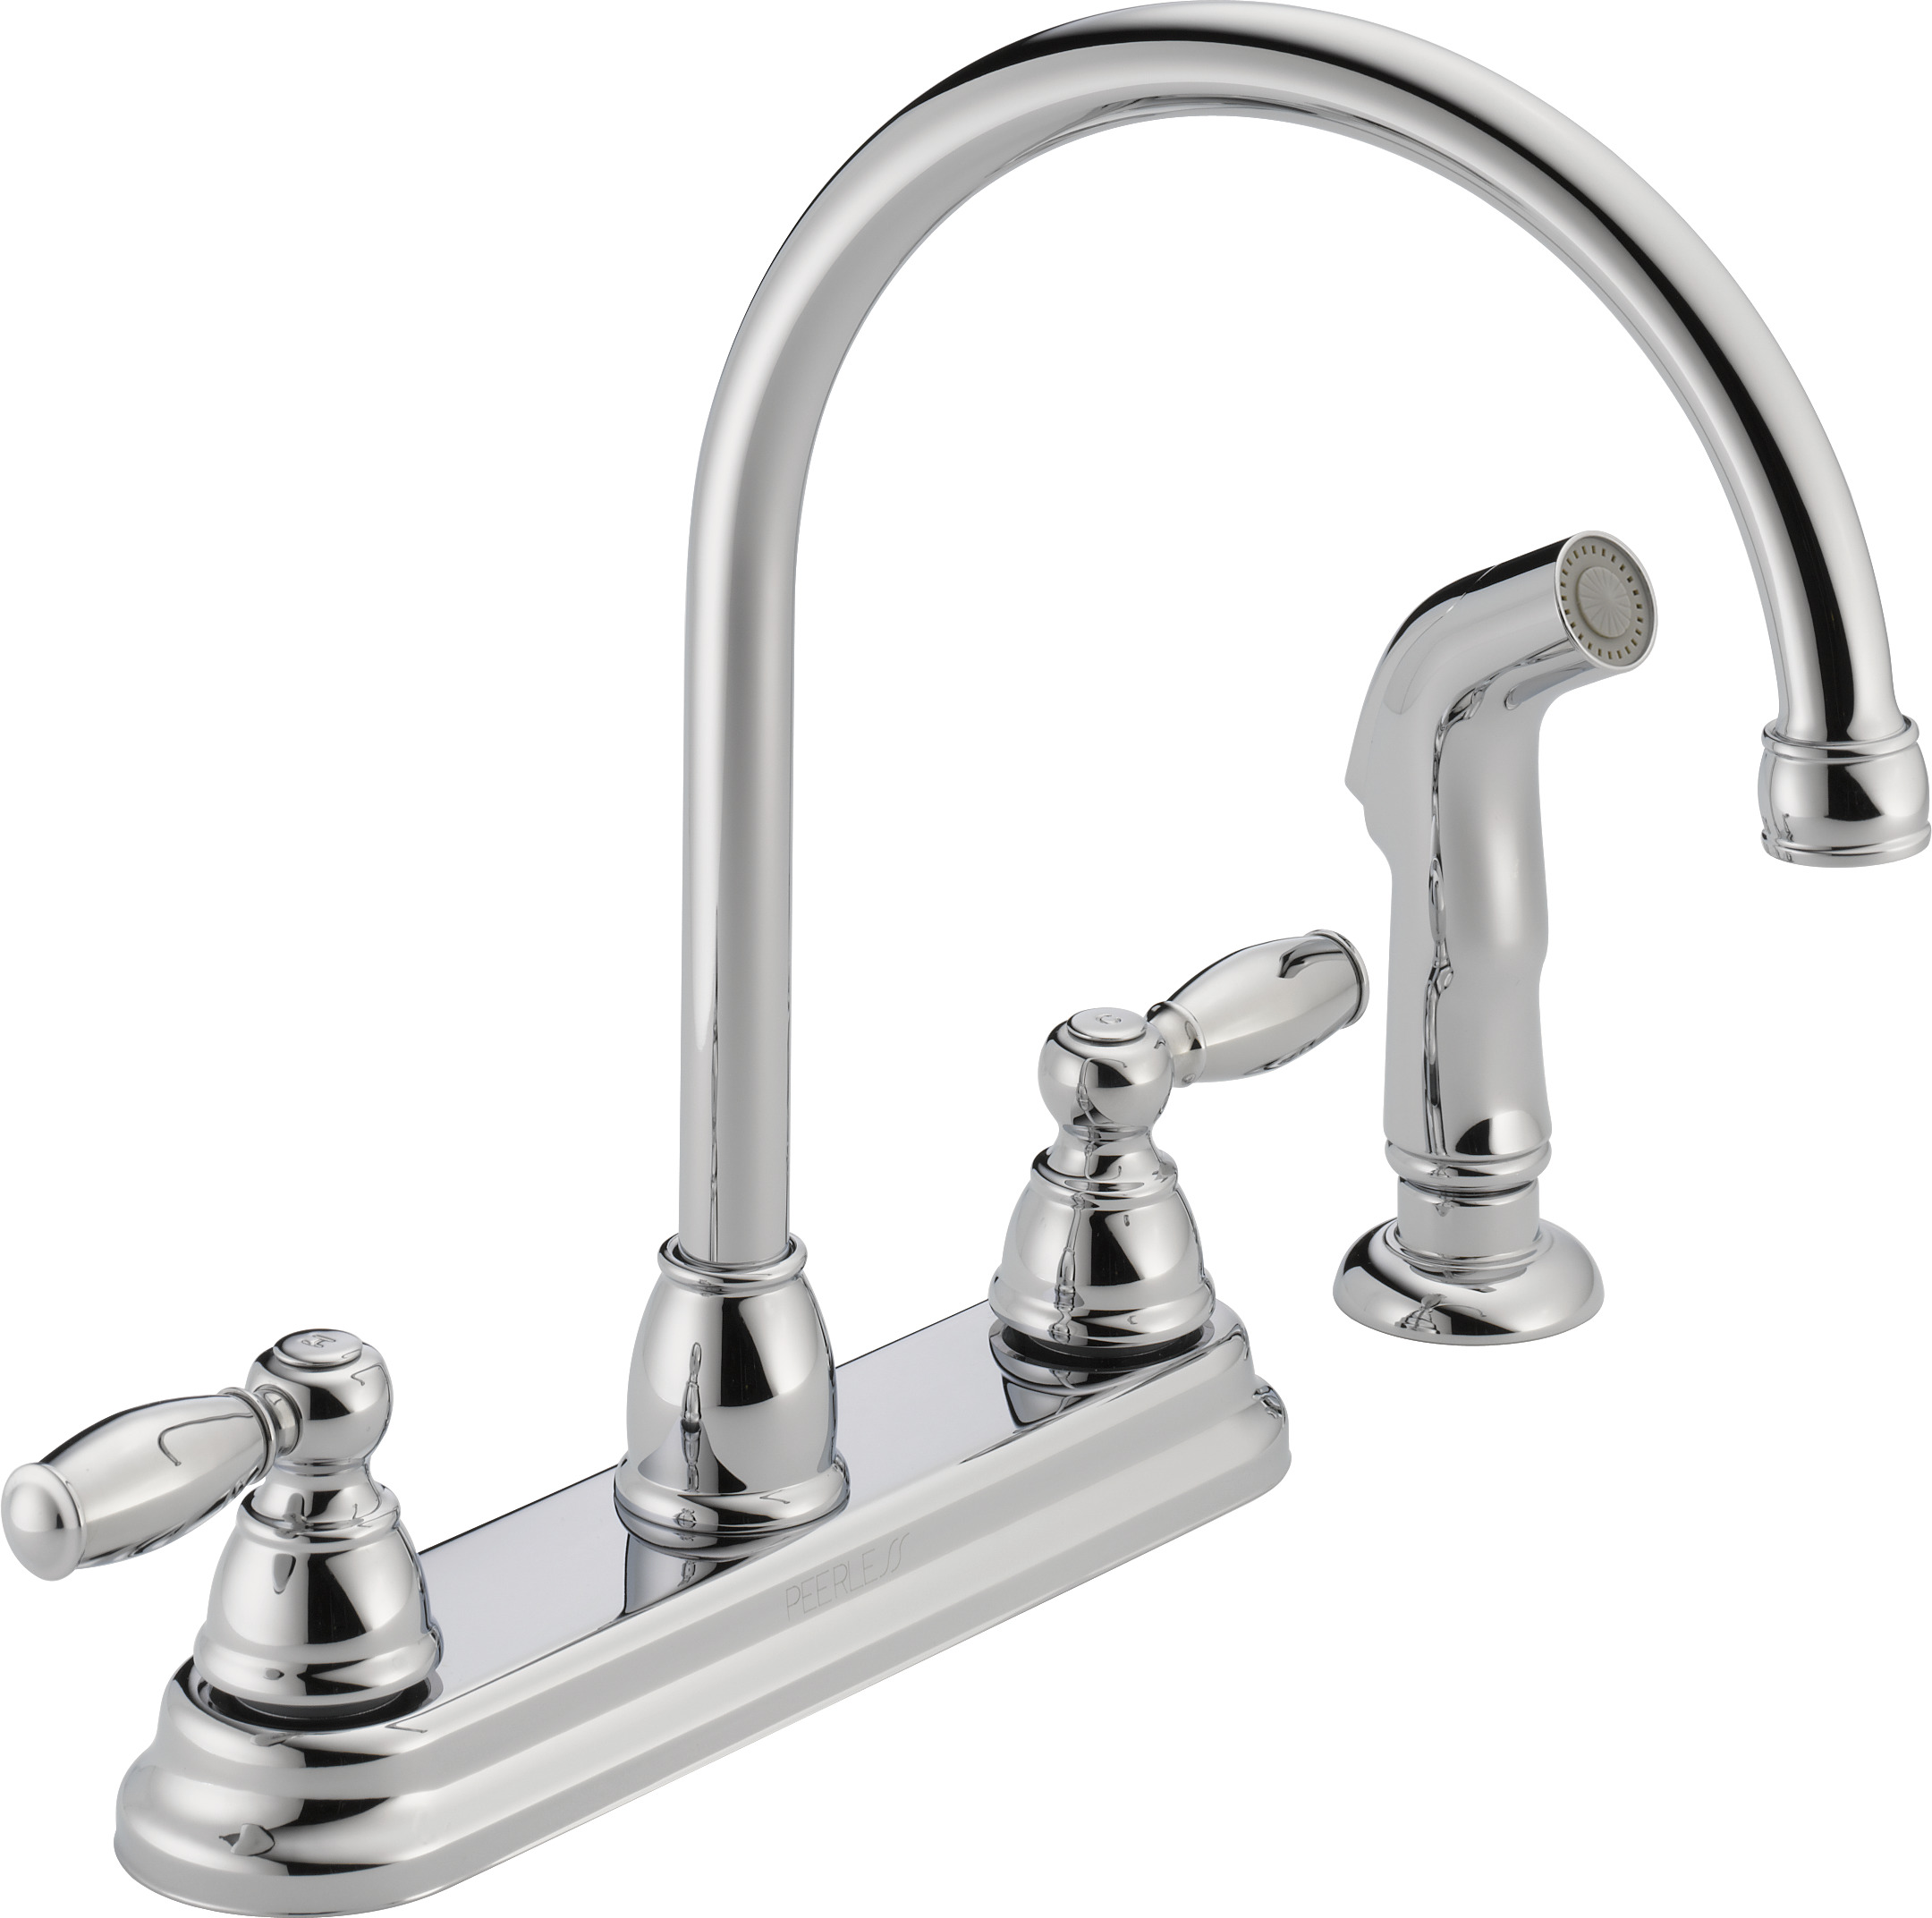 Peerless Two Handle Kitchen Faucet With Side Sprayer, Chrome, #P299575LF